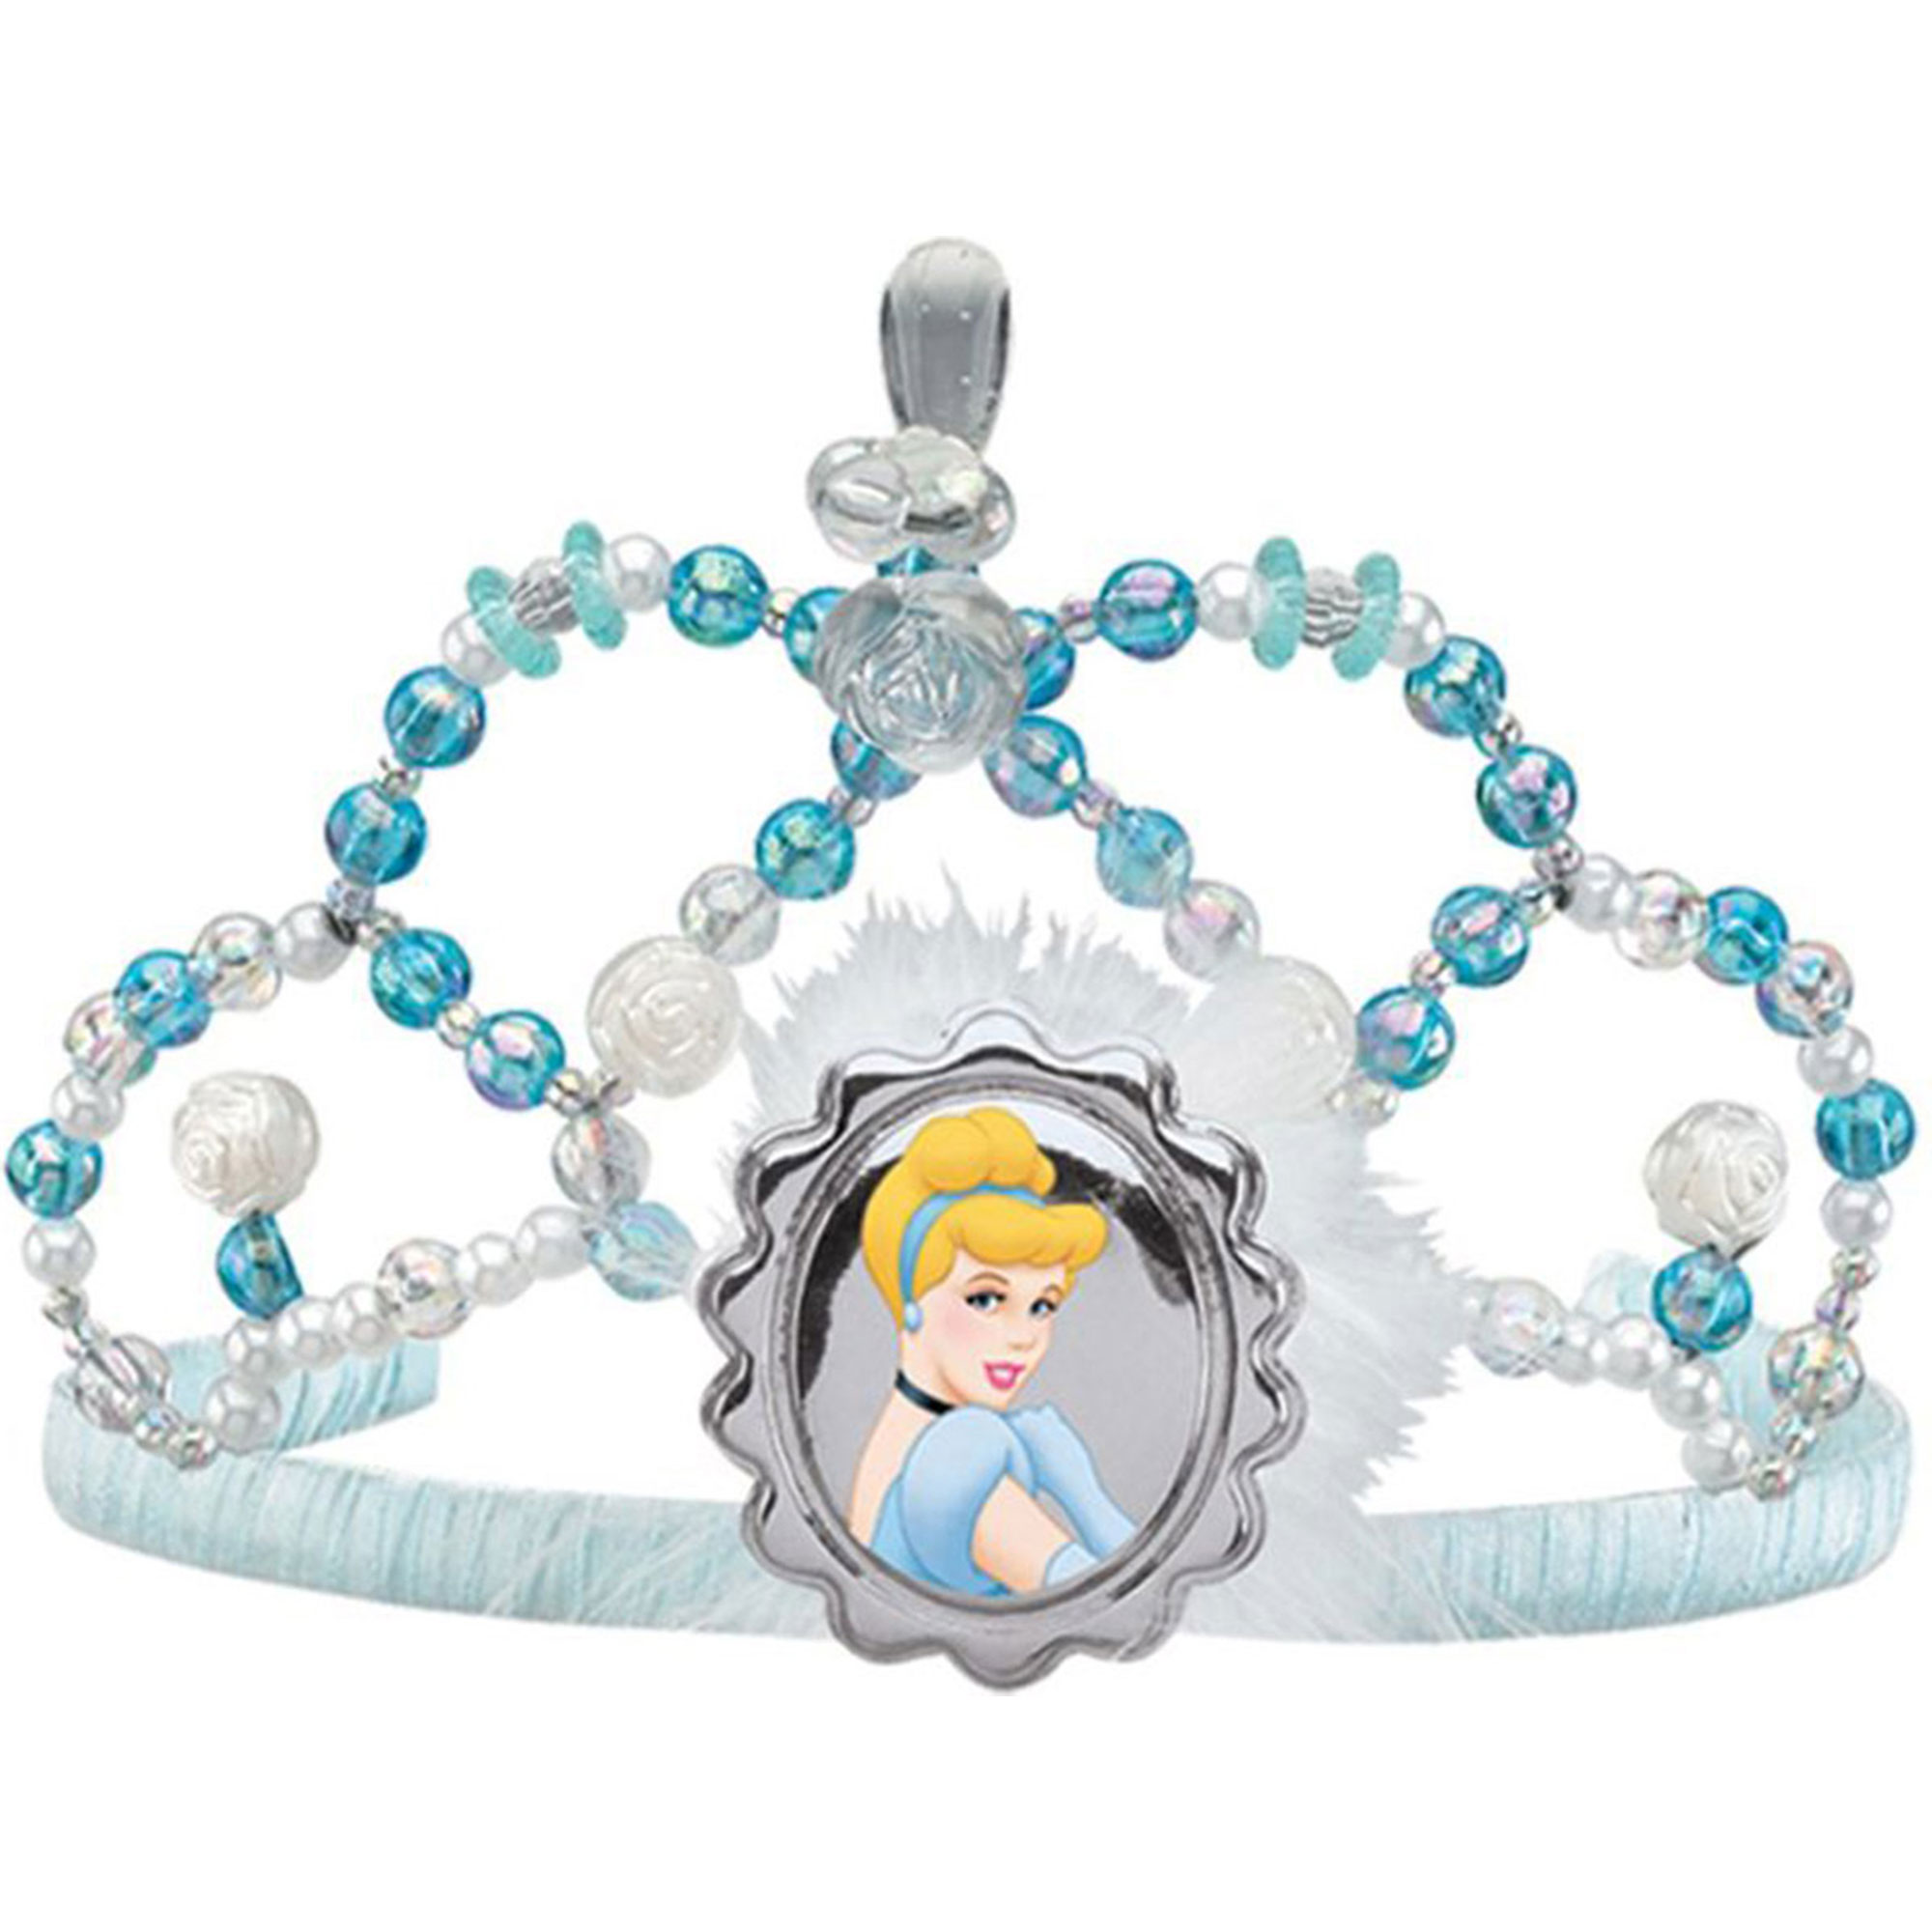 Morris Costumes Accessories & Makeup Princesses Cinderella Tiara, Style DG18227